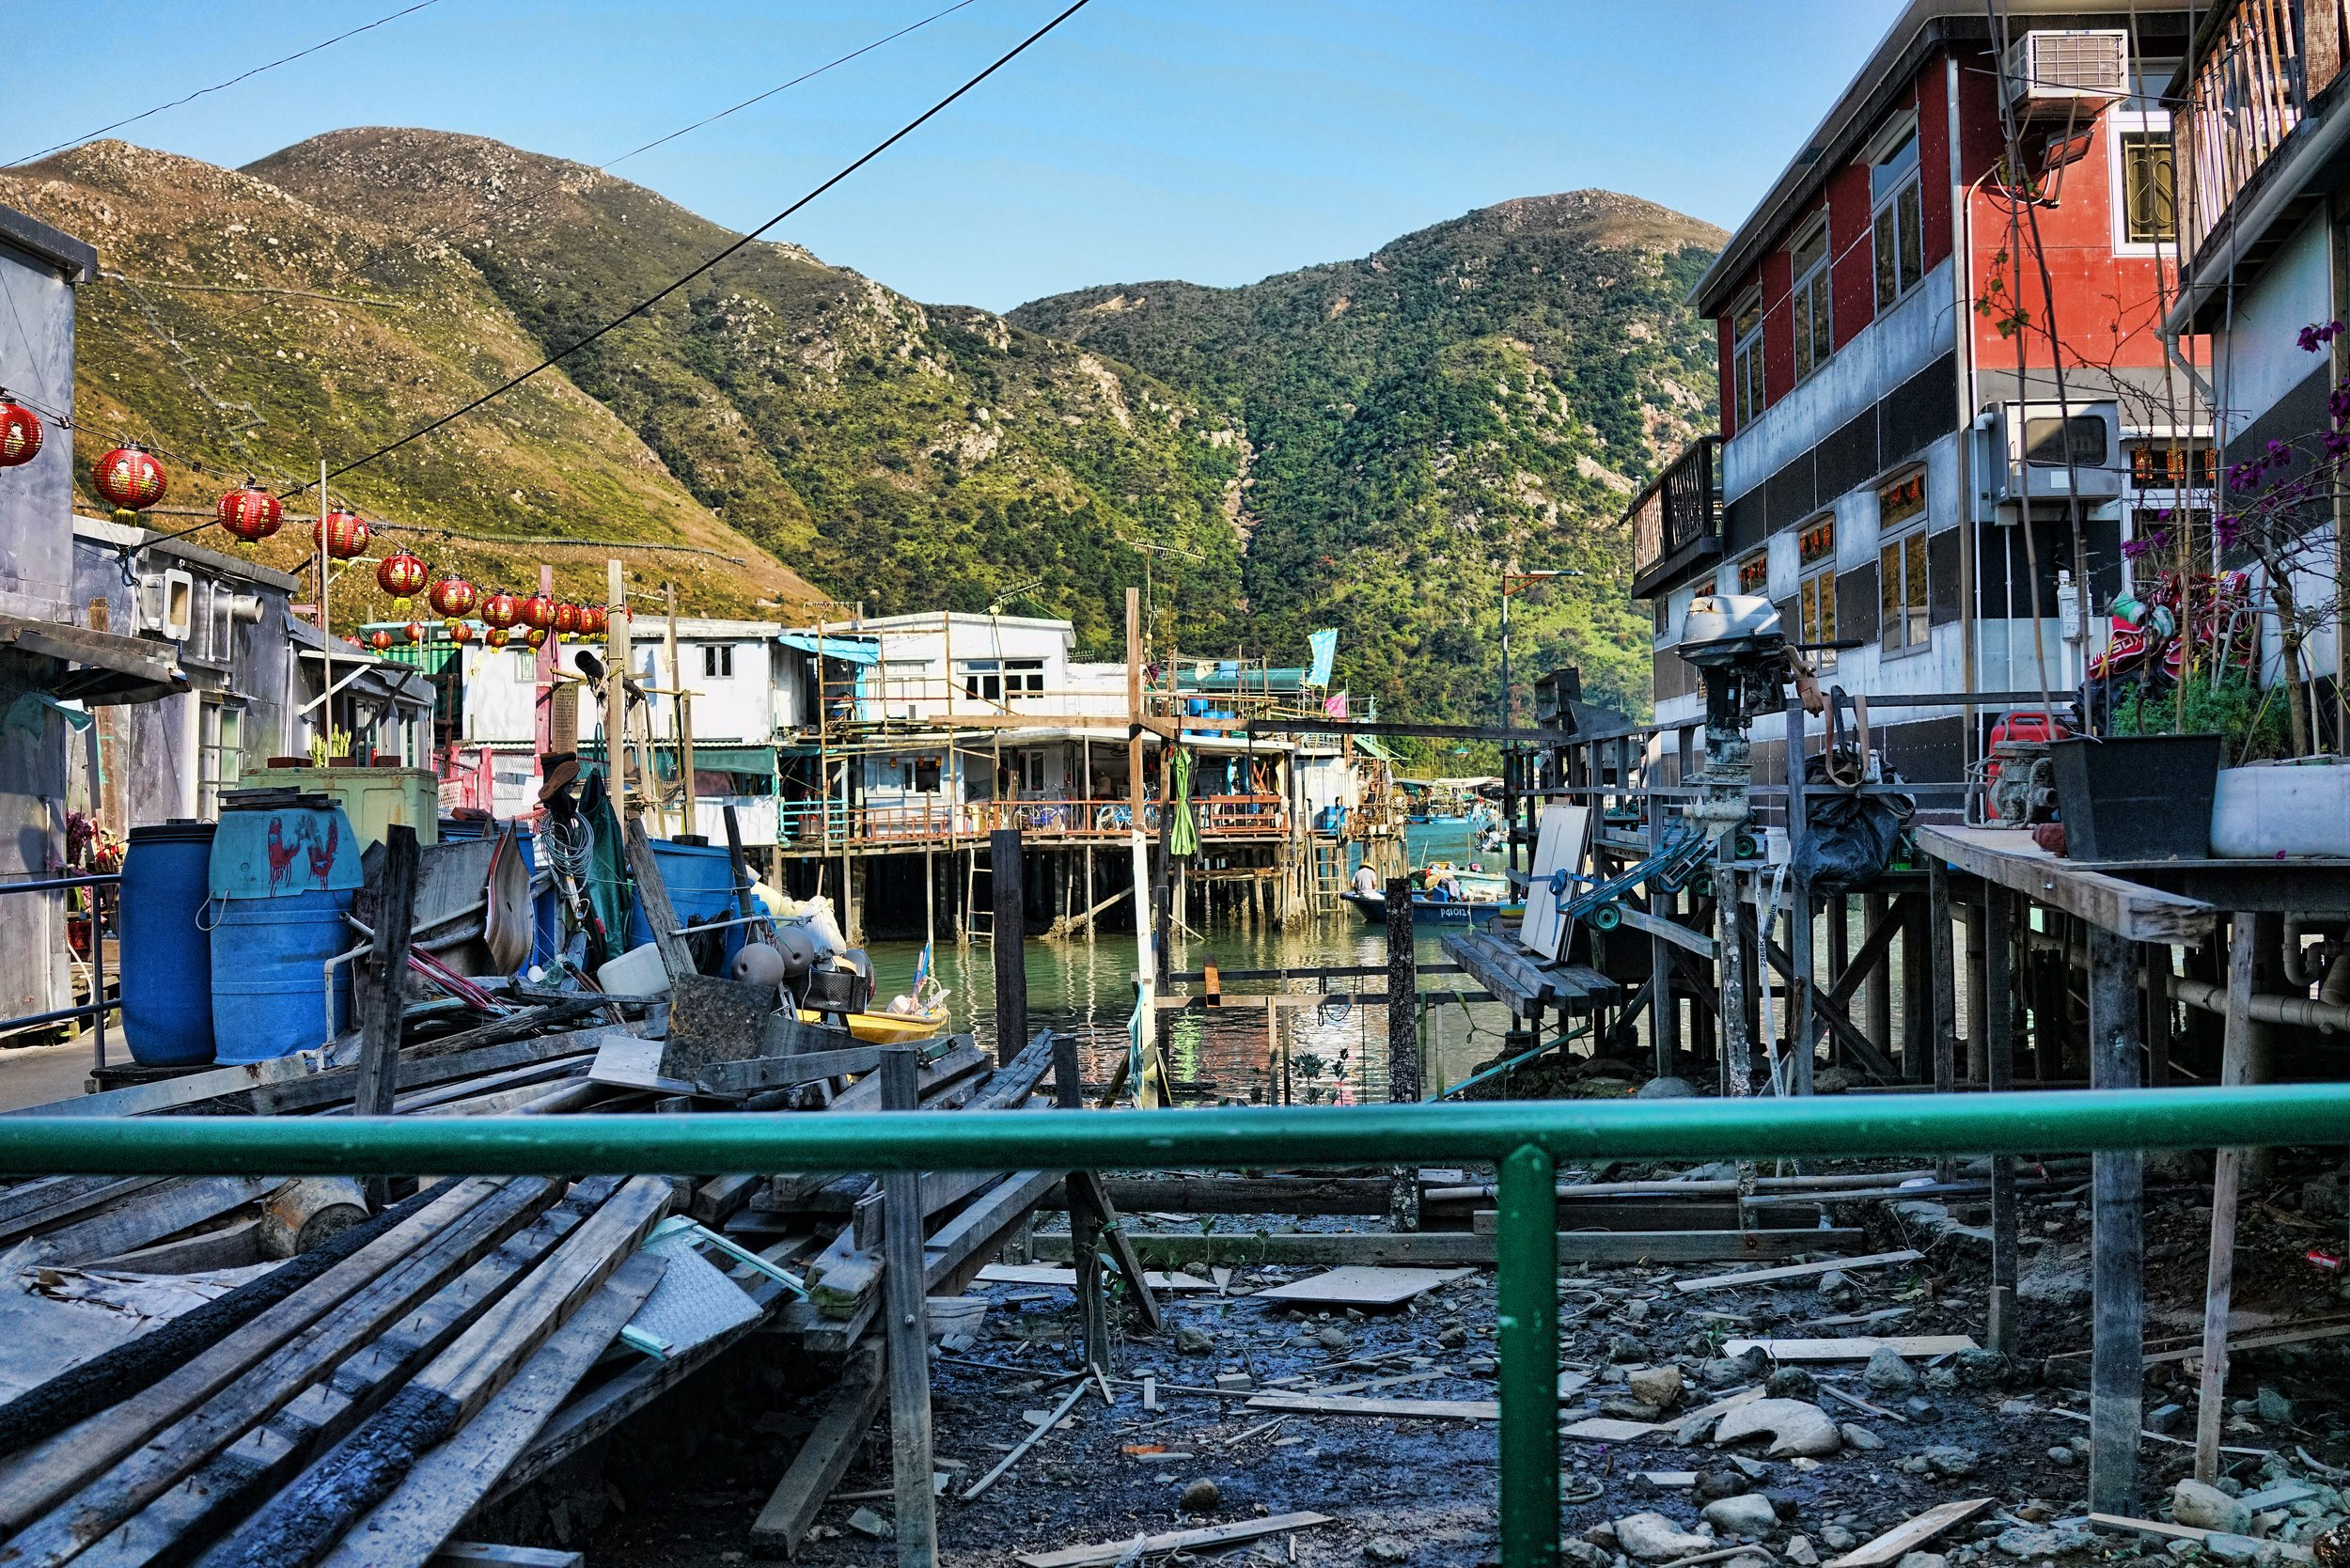 There are a lot of people who think the Tai O Fishing Village is a tourist trap, this is simply NOT the case... it is one of my favourite places to visit and actually most of the visitors are Hong Kong residents... it's remote location means it is very quiet during the week and I would heartily recommend that anyone visiting Hong Kong makes the long journey so see this rather unique place - I would be happy to take you if you book one of my private walking tours.... frankly, the best way to see Tai O is by foot.